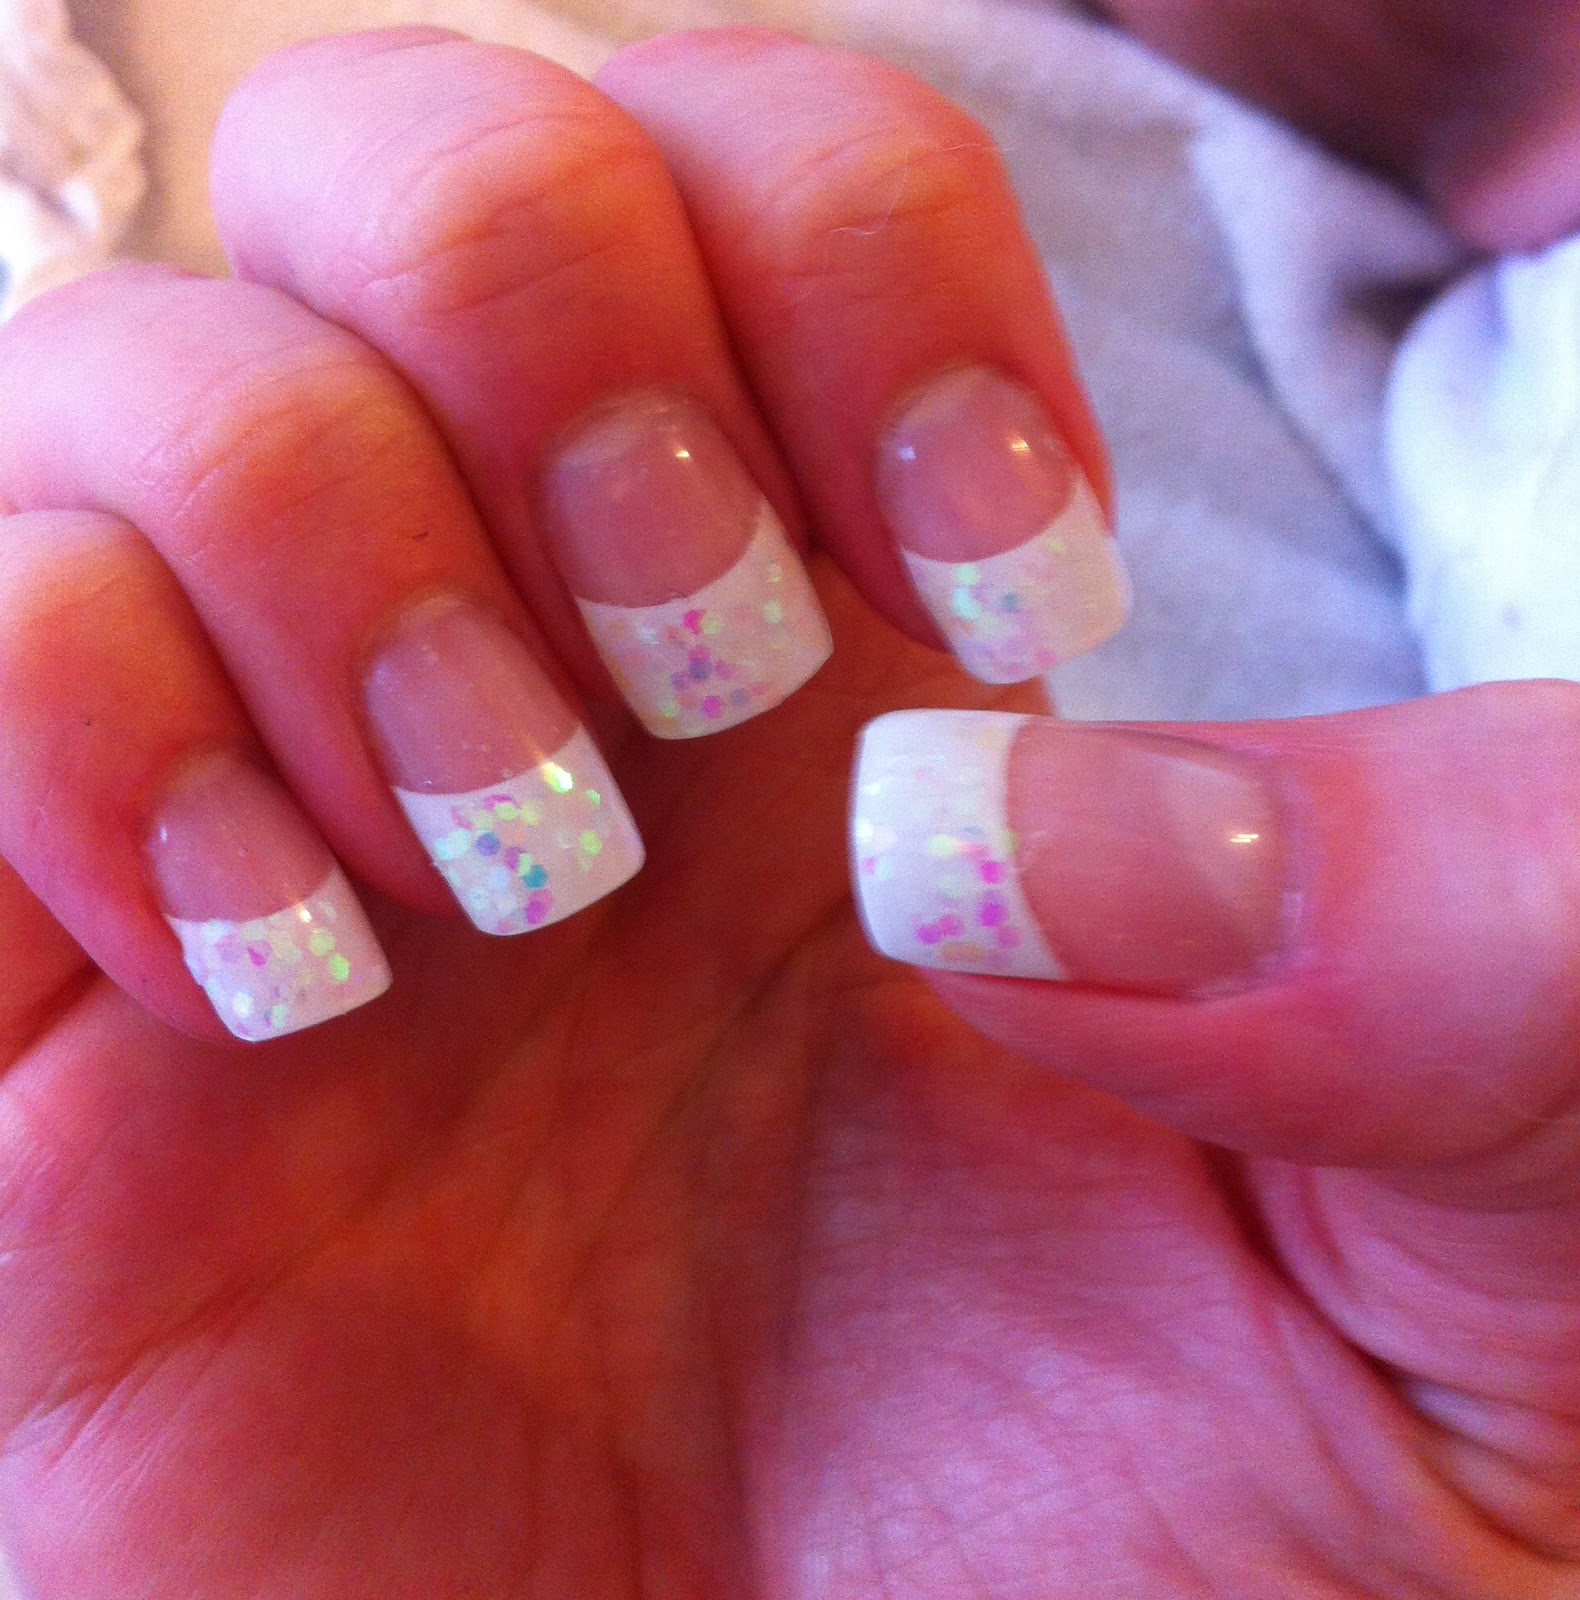 SHARON\'S NAIL ART!: French nails with white glitter tips